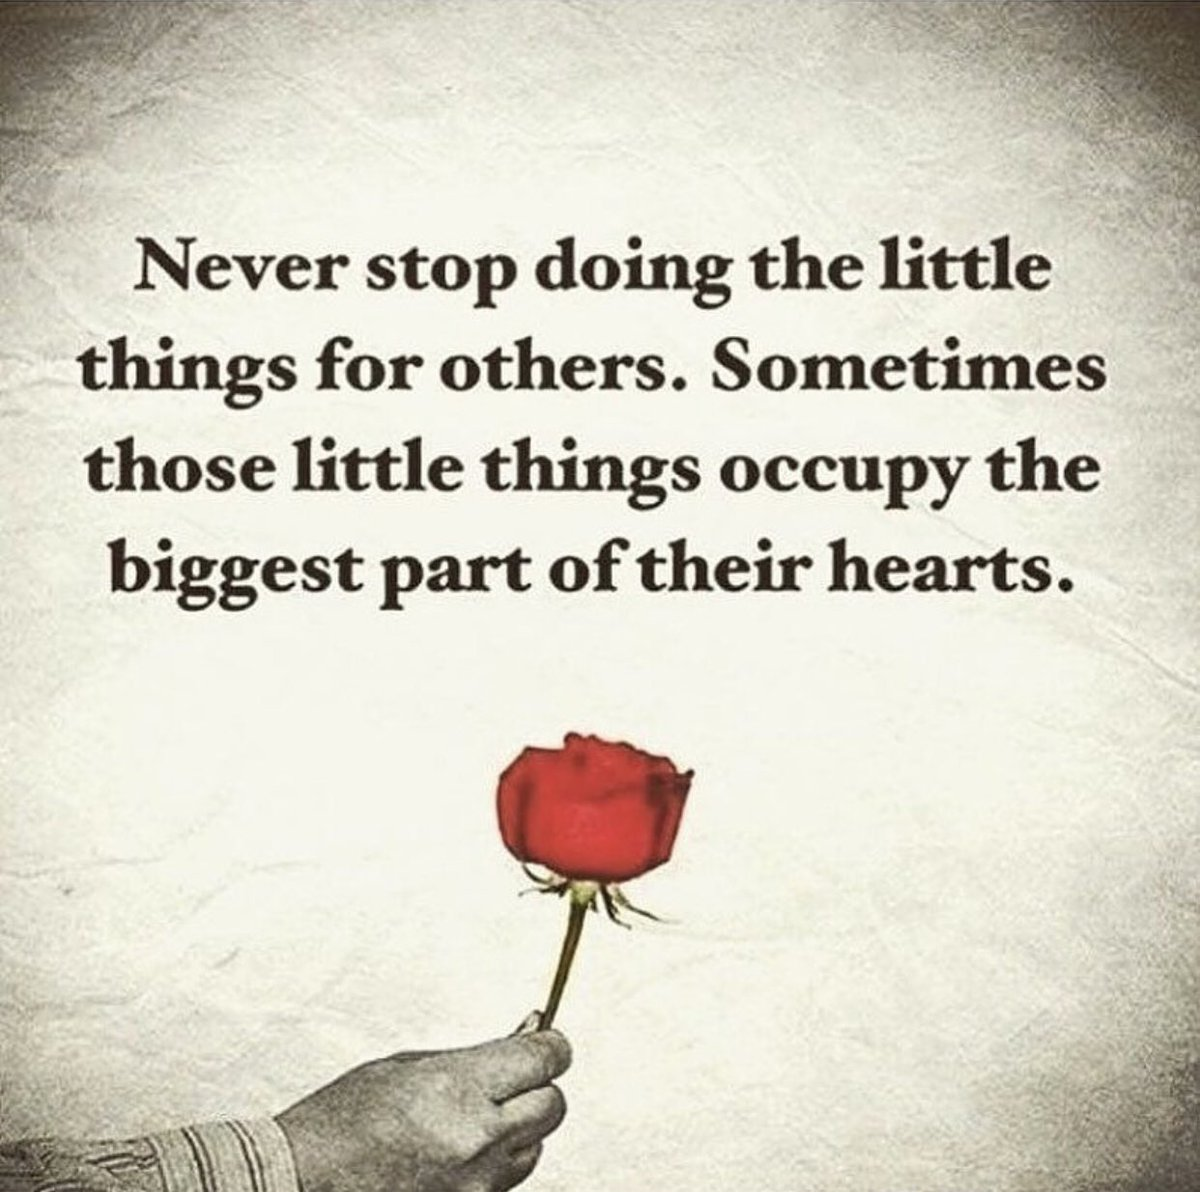 Little things matter! Touch a heart today! 😊❤️